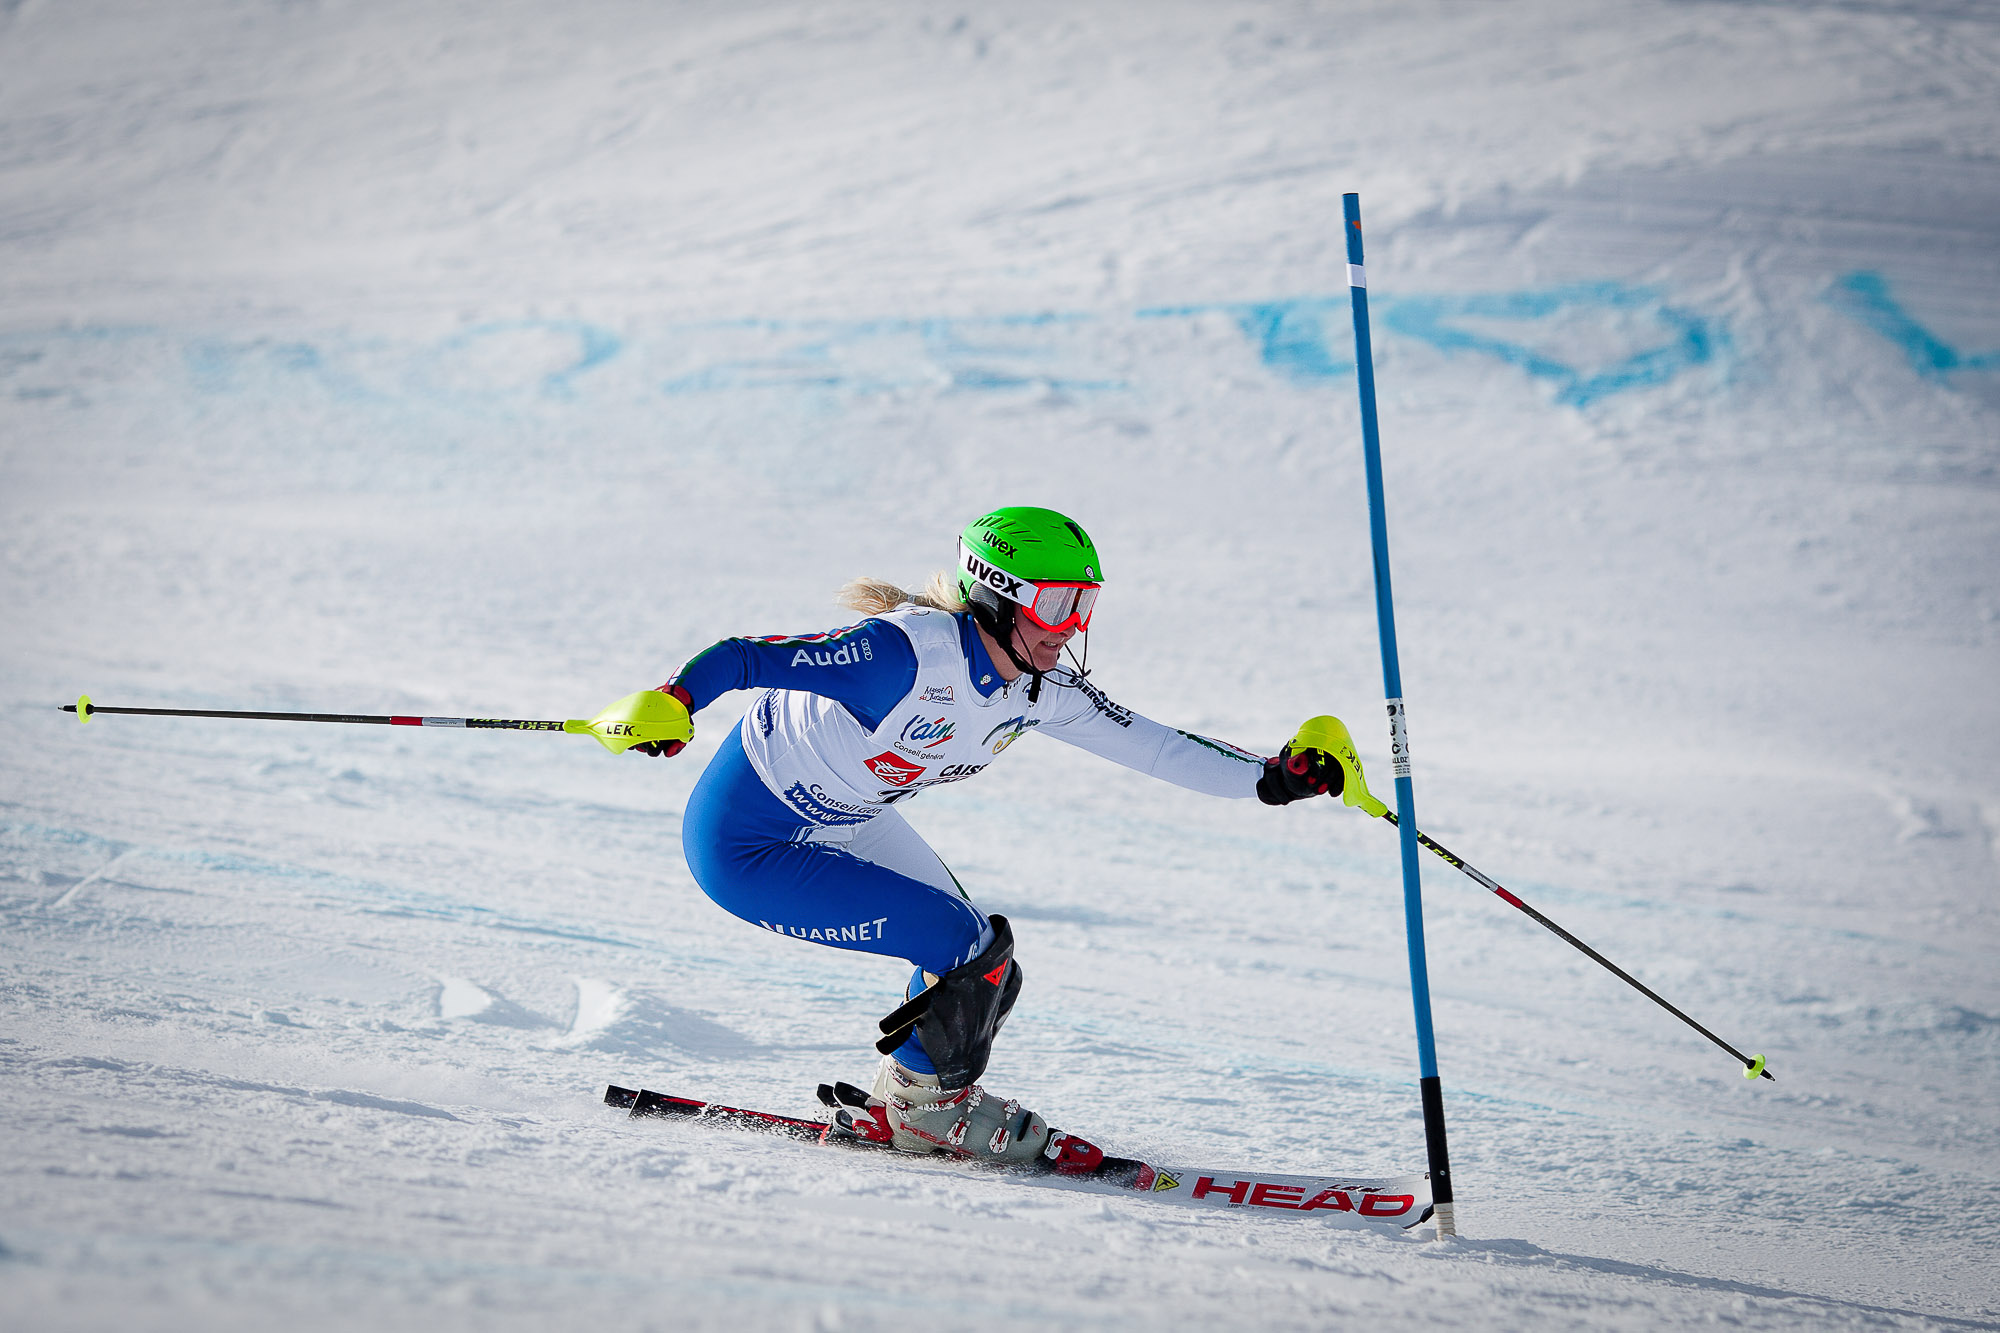 Coupe_Europe_ski_dames-340.jpg